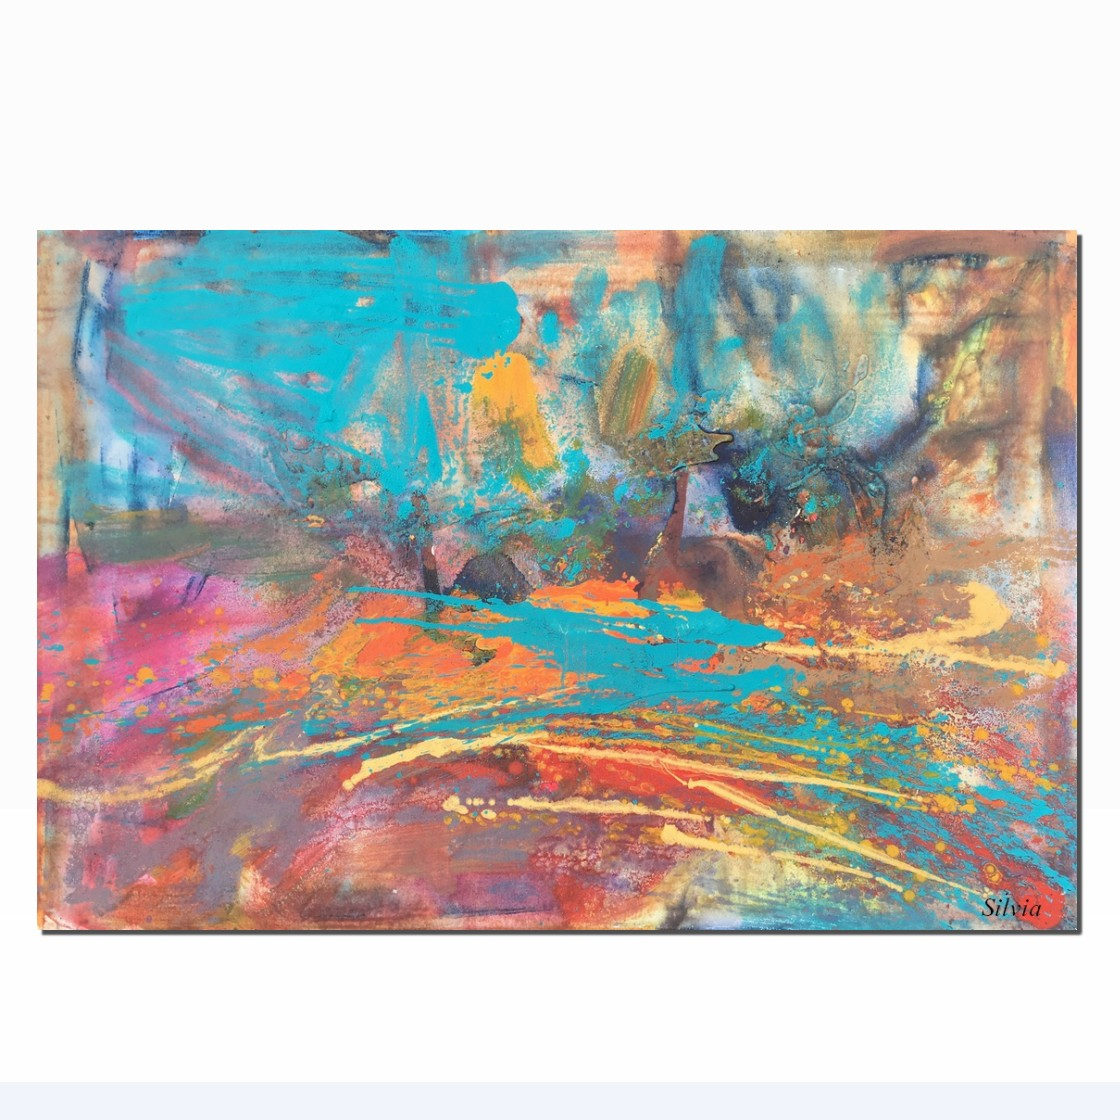 Extra Large Wall Art, Abstract Art, Abstract Painting, Oil Painting, Modern Painting, Large Abstract Art, Original Painting, Canvas Art